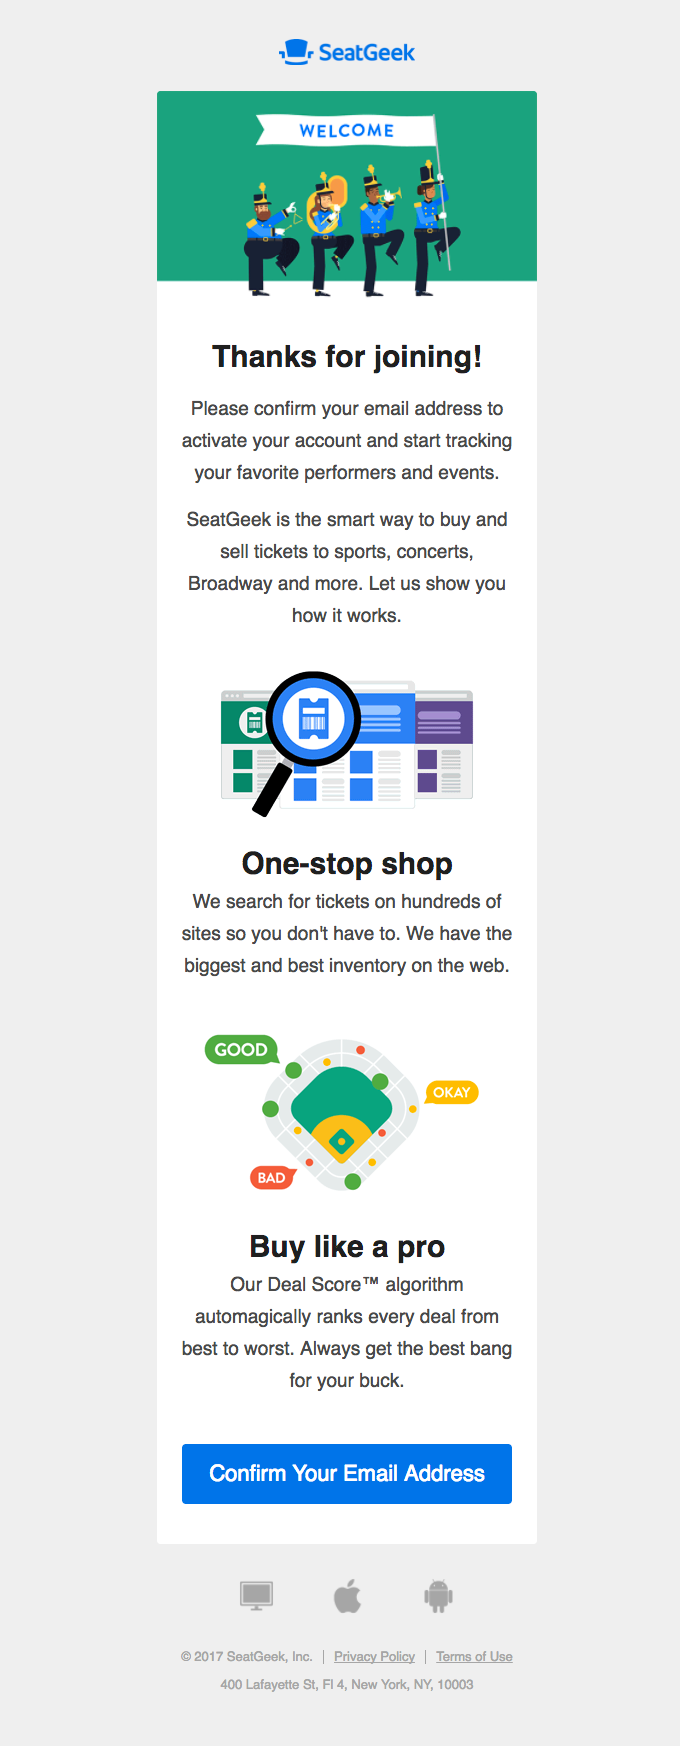 SeatGeek - Welcome Email Design Trends